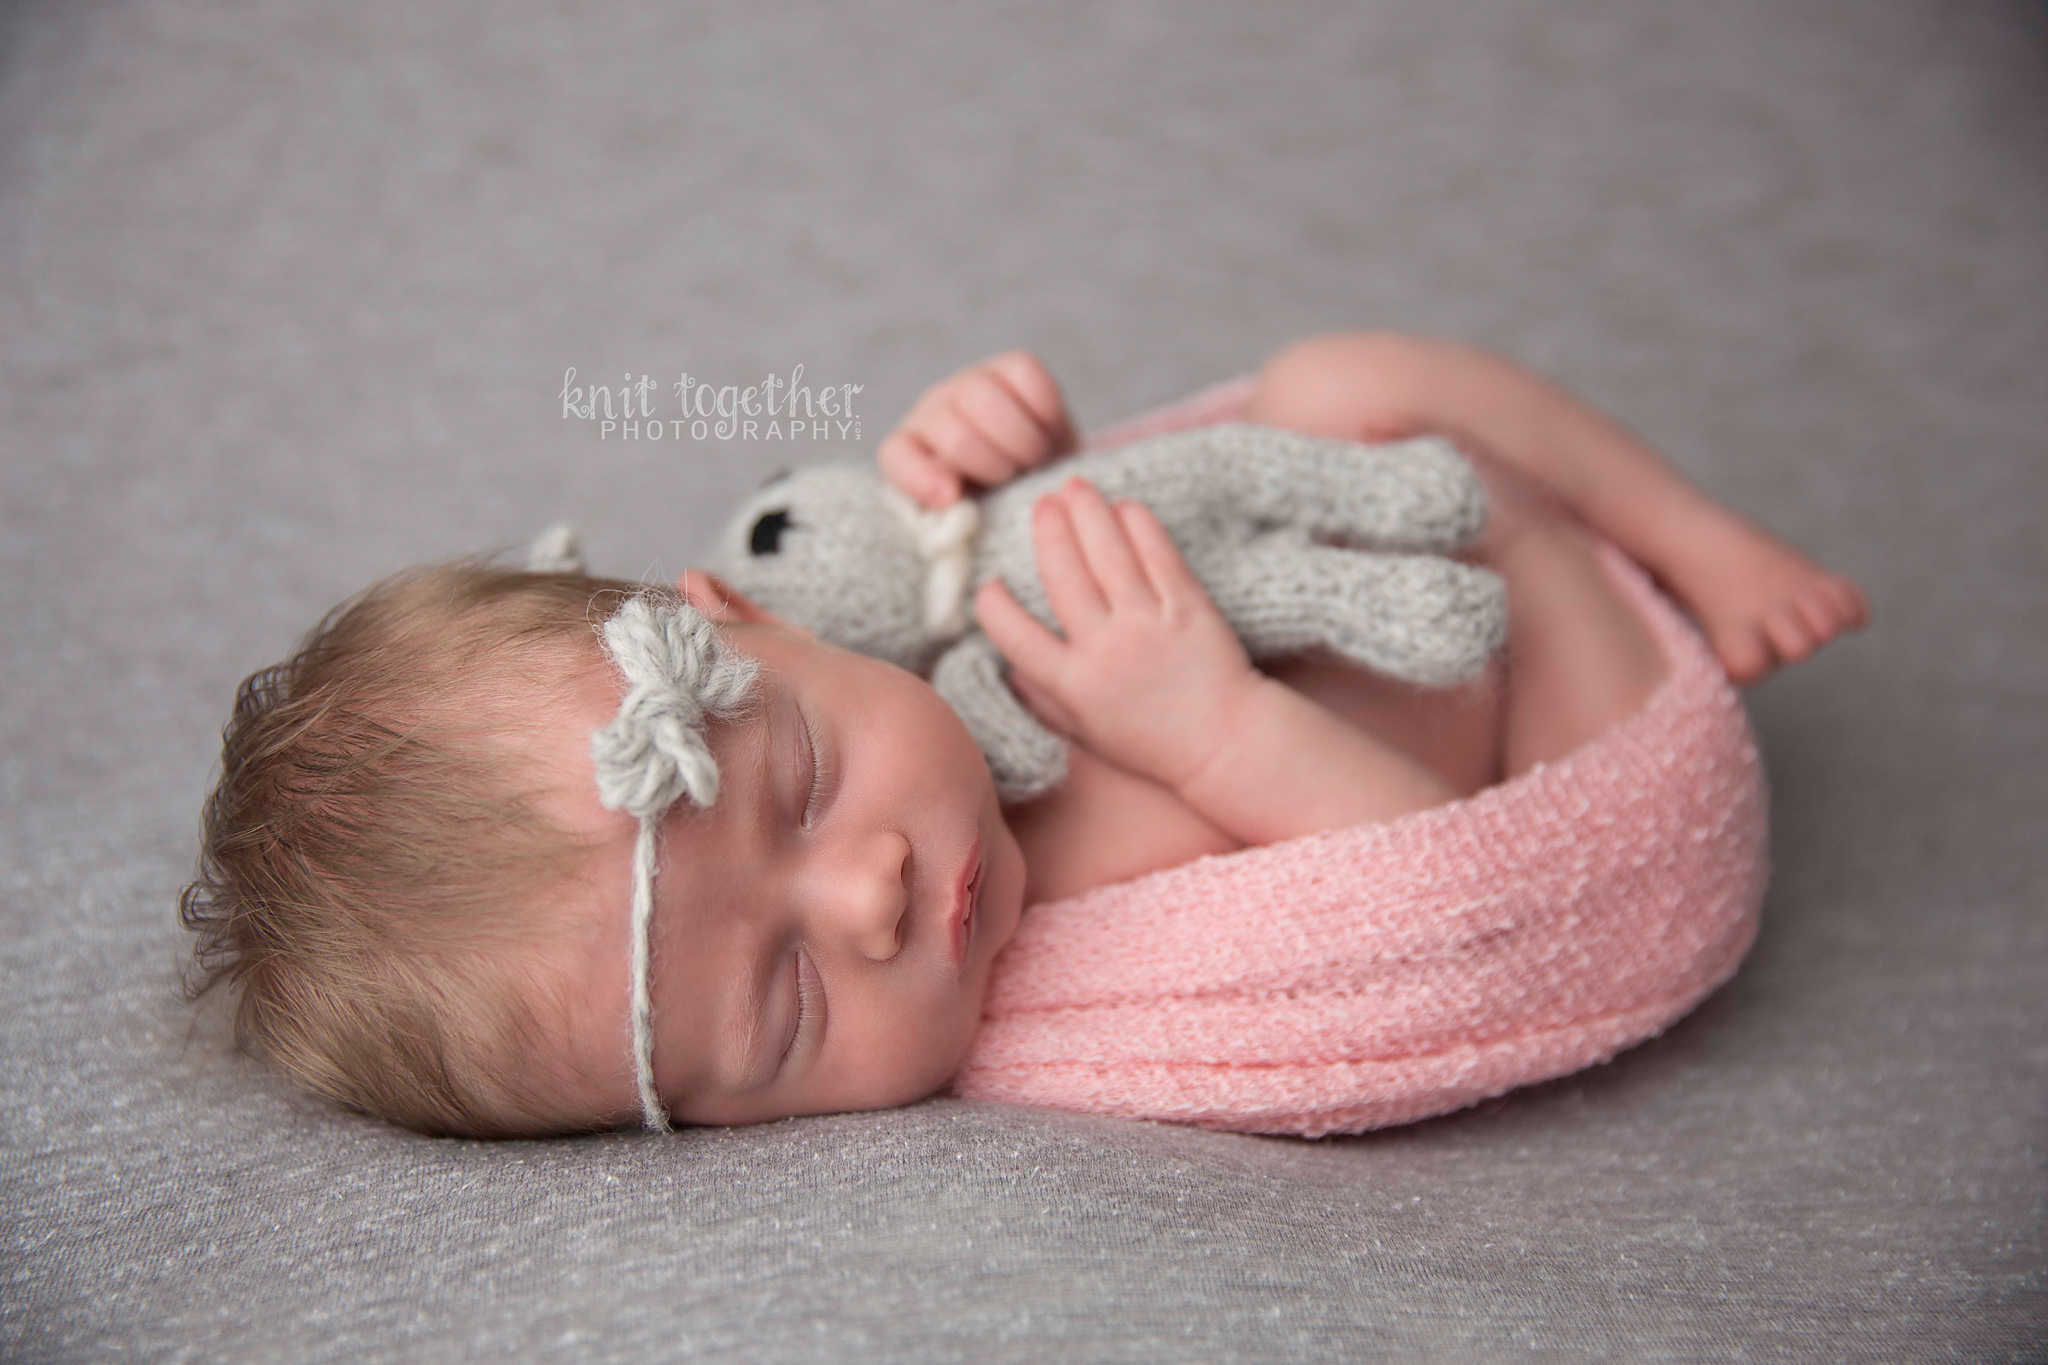 Knitting For Newborn Photography : Maternity or not central ma newborn photographer knit